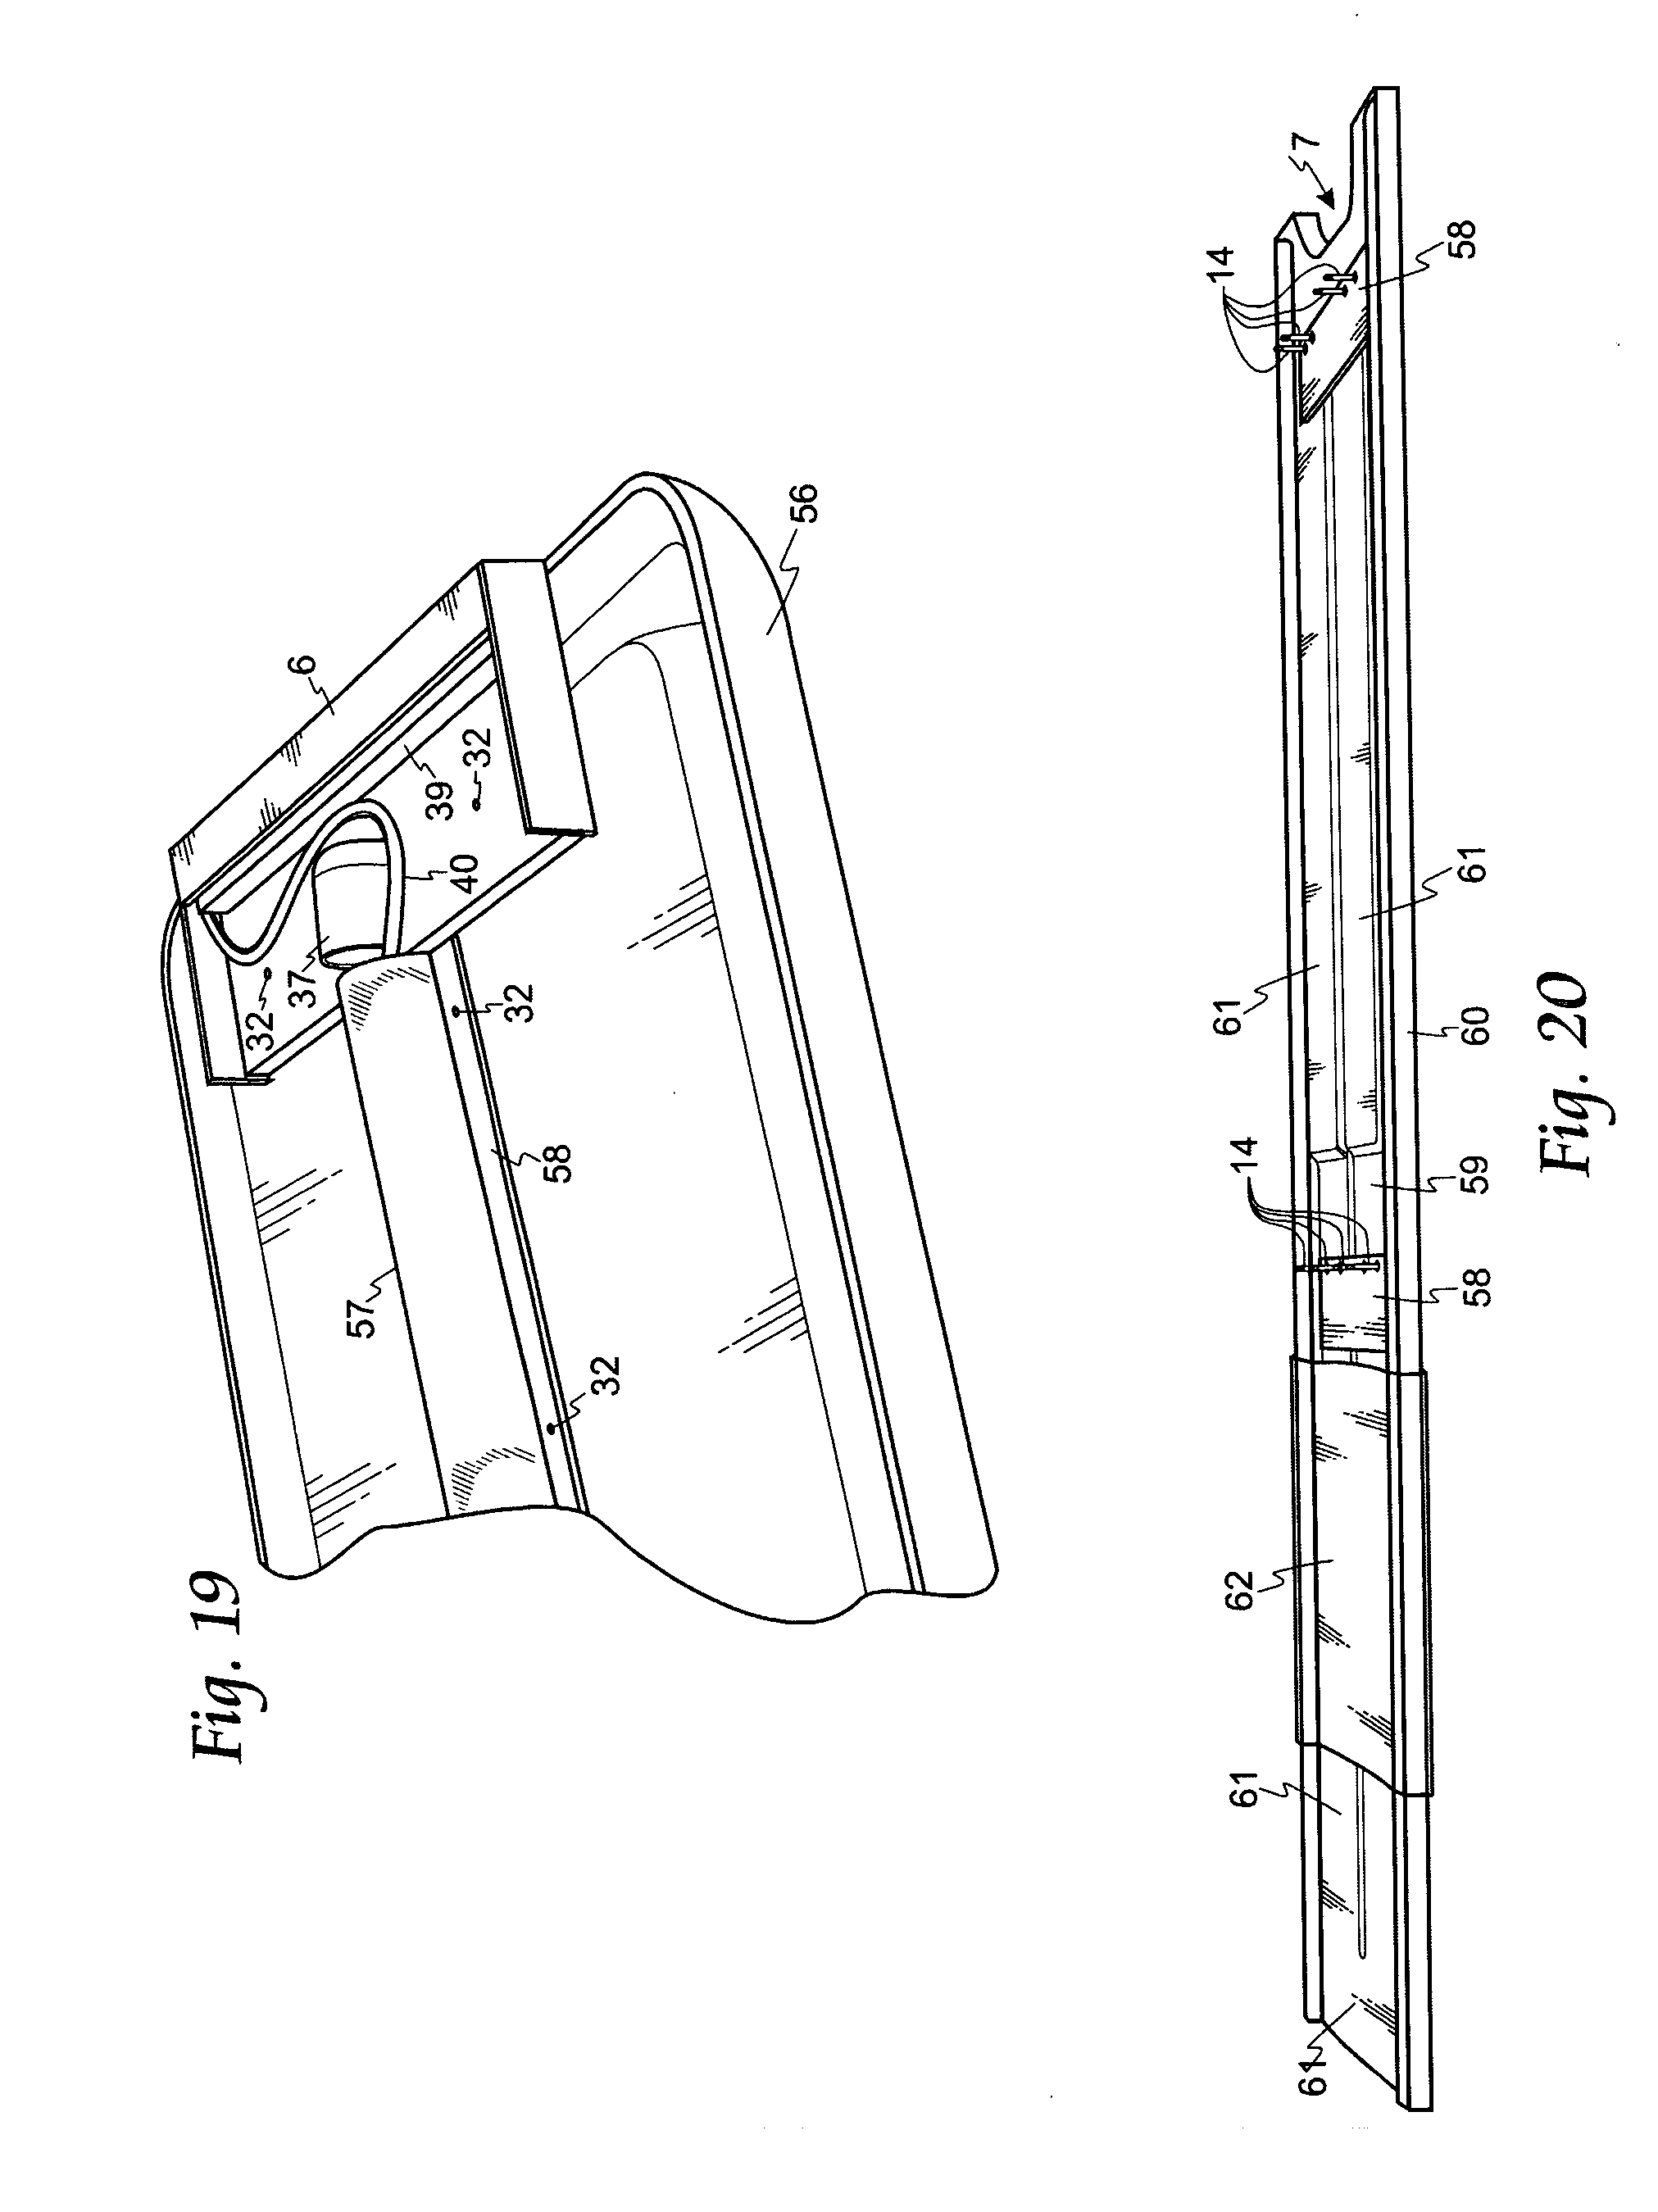 Patent Us20070123392 Diving Board With Nonlinear Leaf Springs Jewett Wiring Diagram Drawing